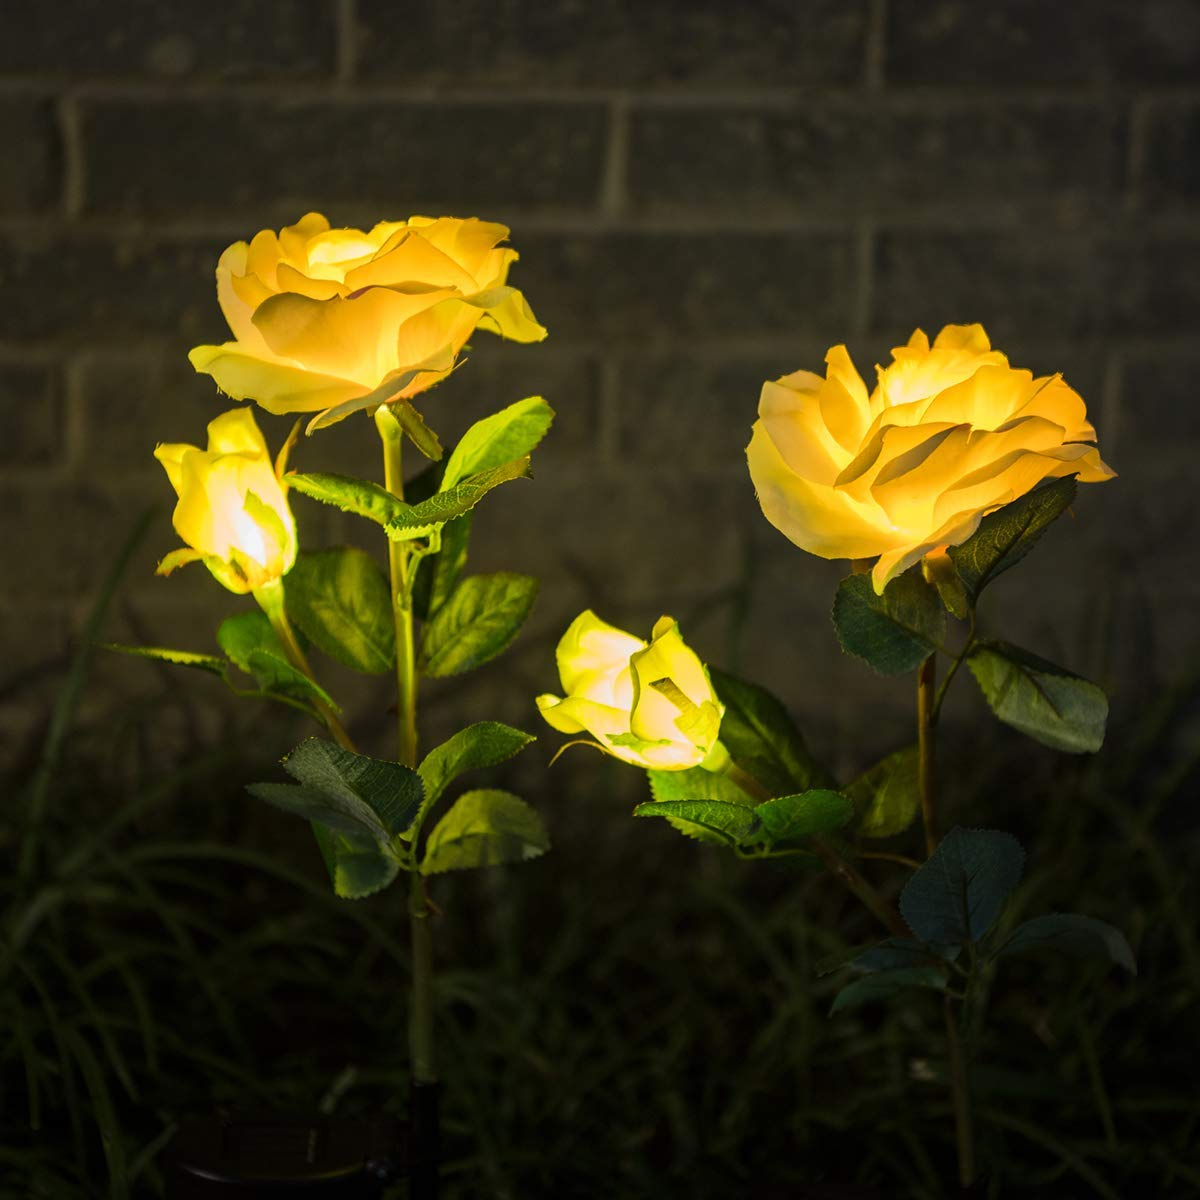 WED Outdoor Solar Garden Stake Lights, 2 Pack Solar Powered Lights with 4 Rose Flower, LED Solar Decorative Lights for Garden Patio Backyard Patio Pathway Backyard Decoration(Yellow)